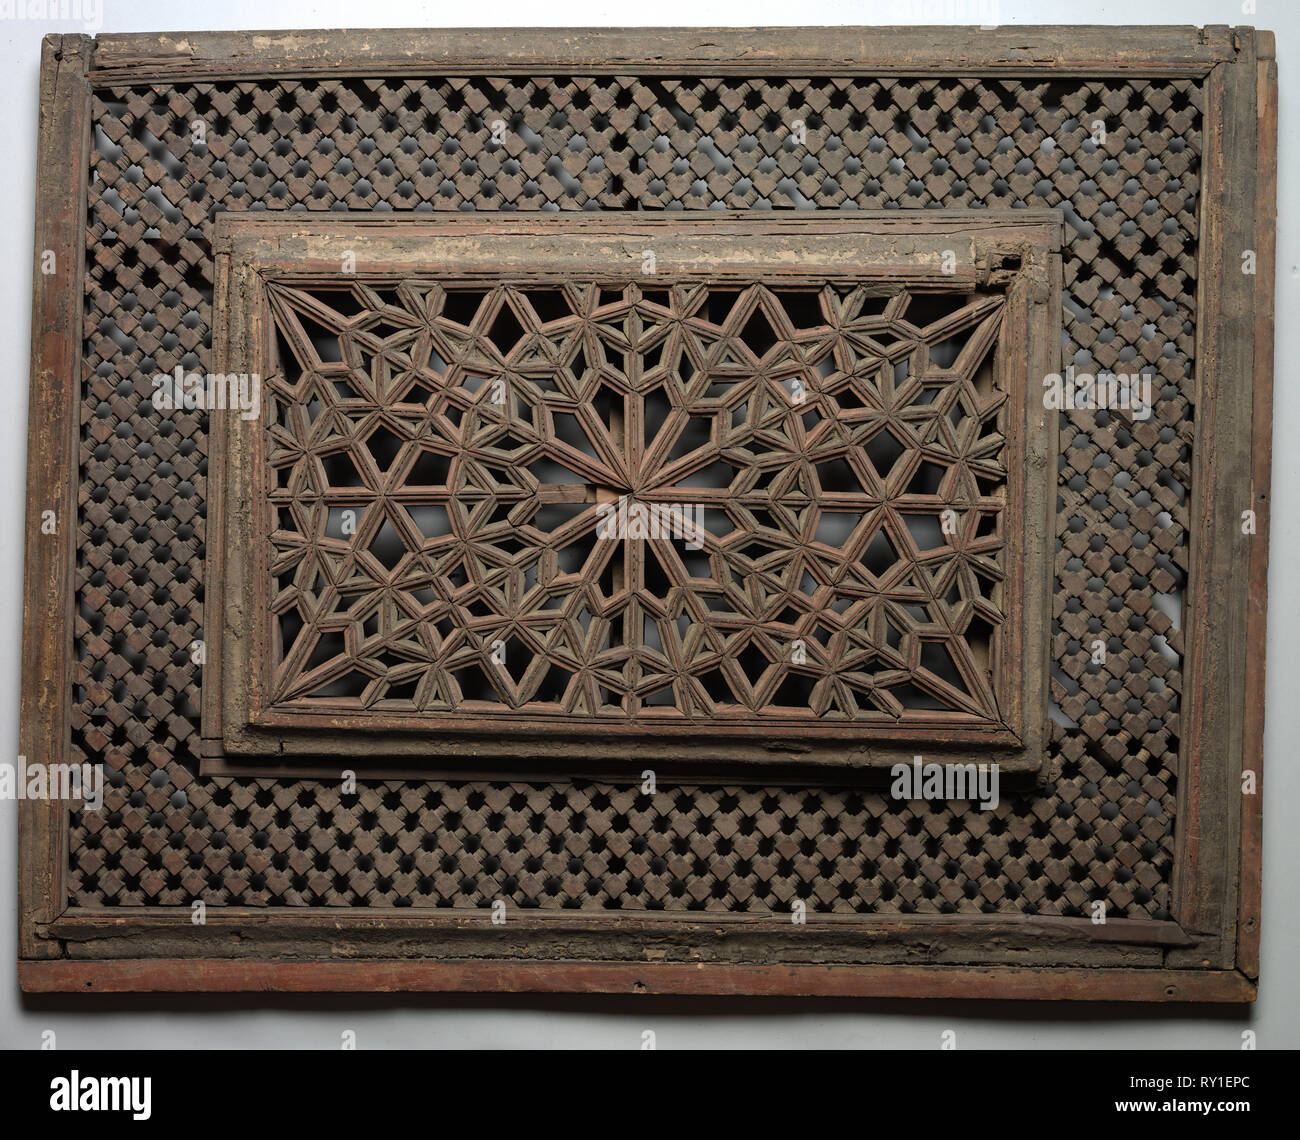 Carved Wood Panel 18th Century India 18th Century Wood Stock